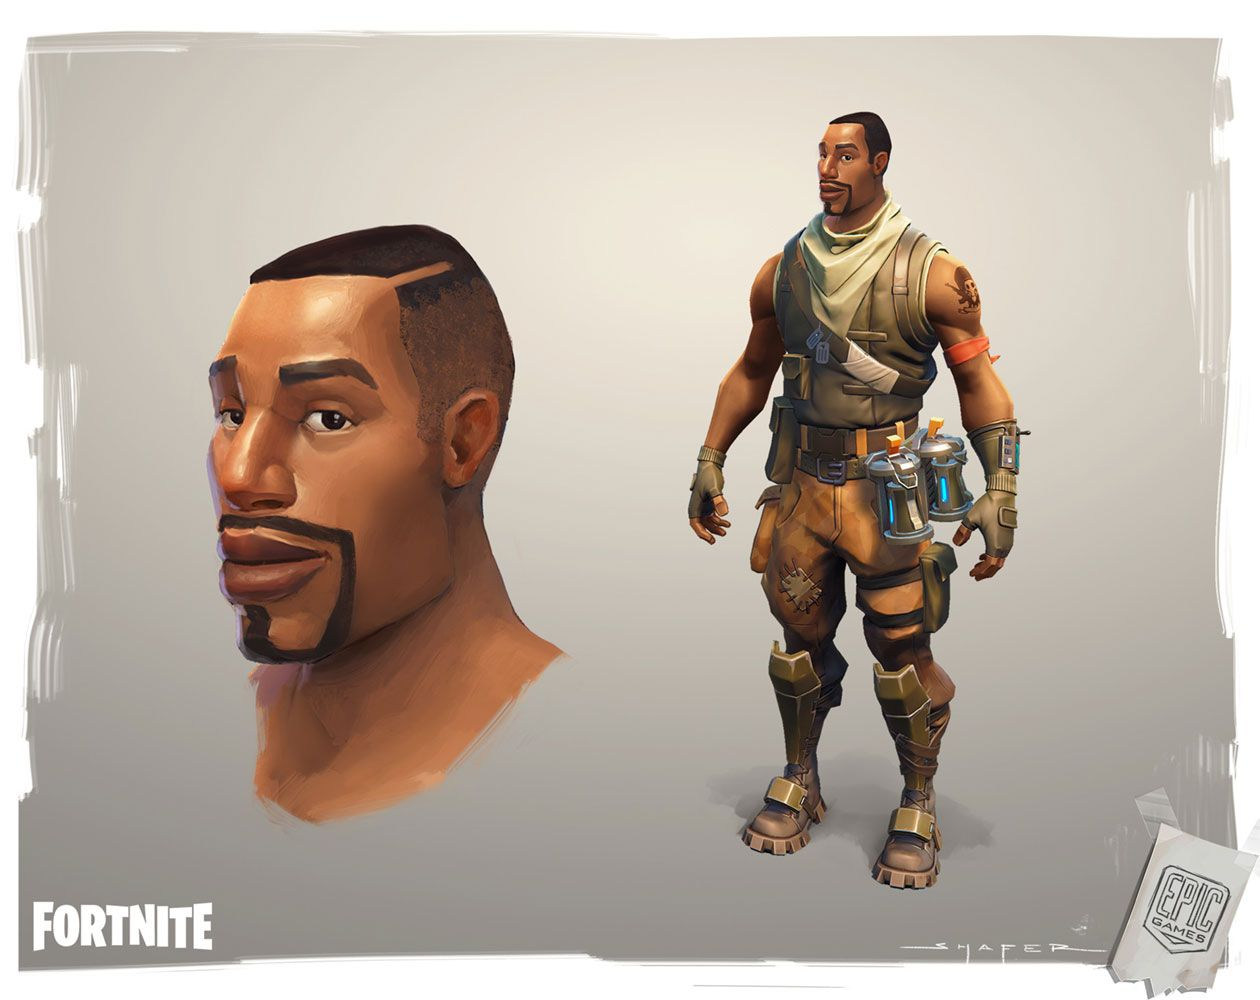 Black Soldier from Fortnite Character art, Concept art